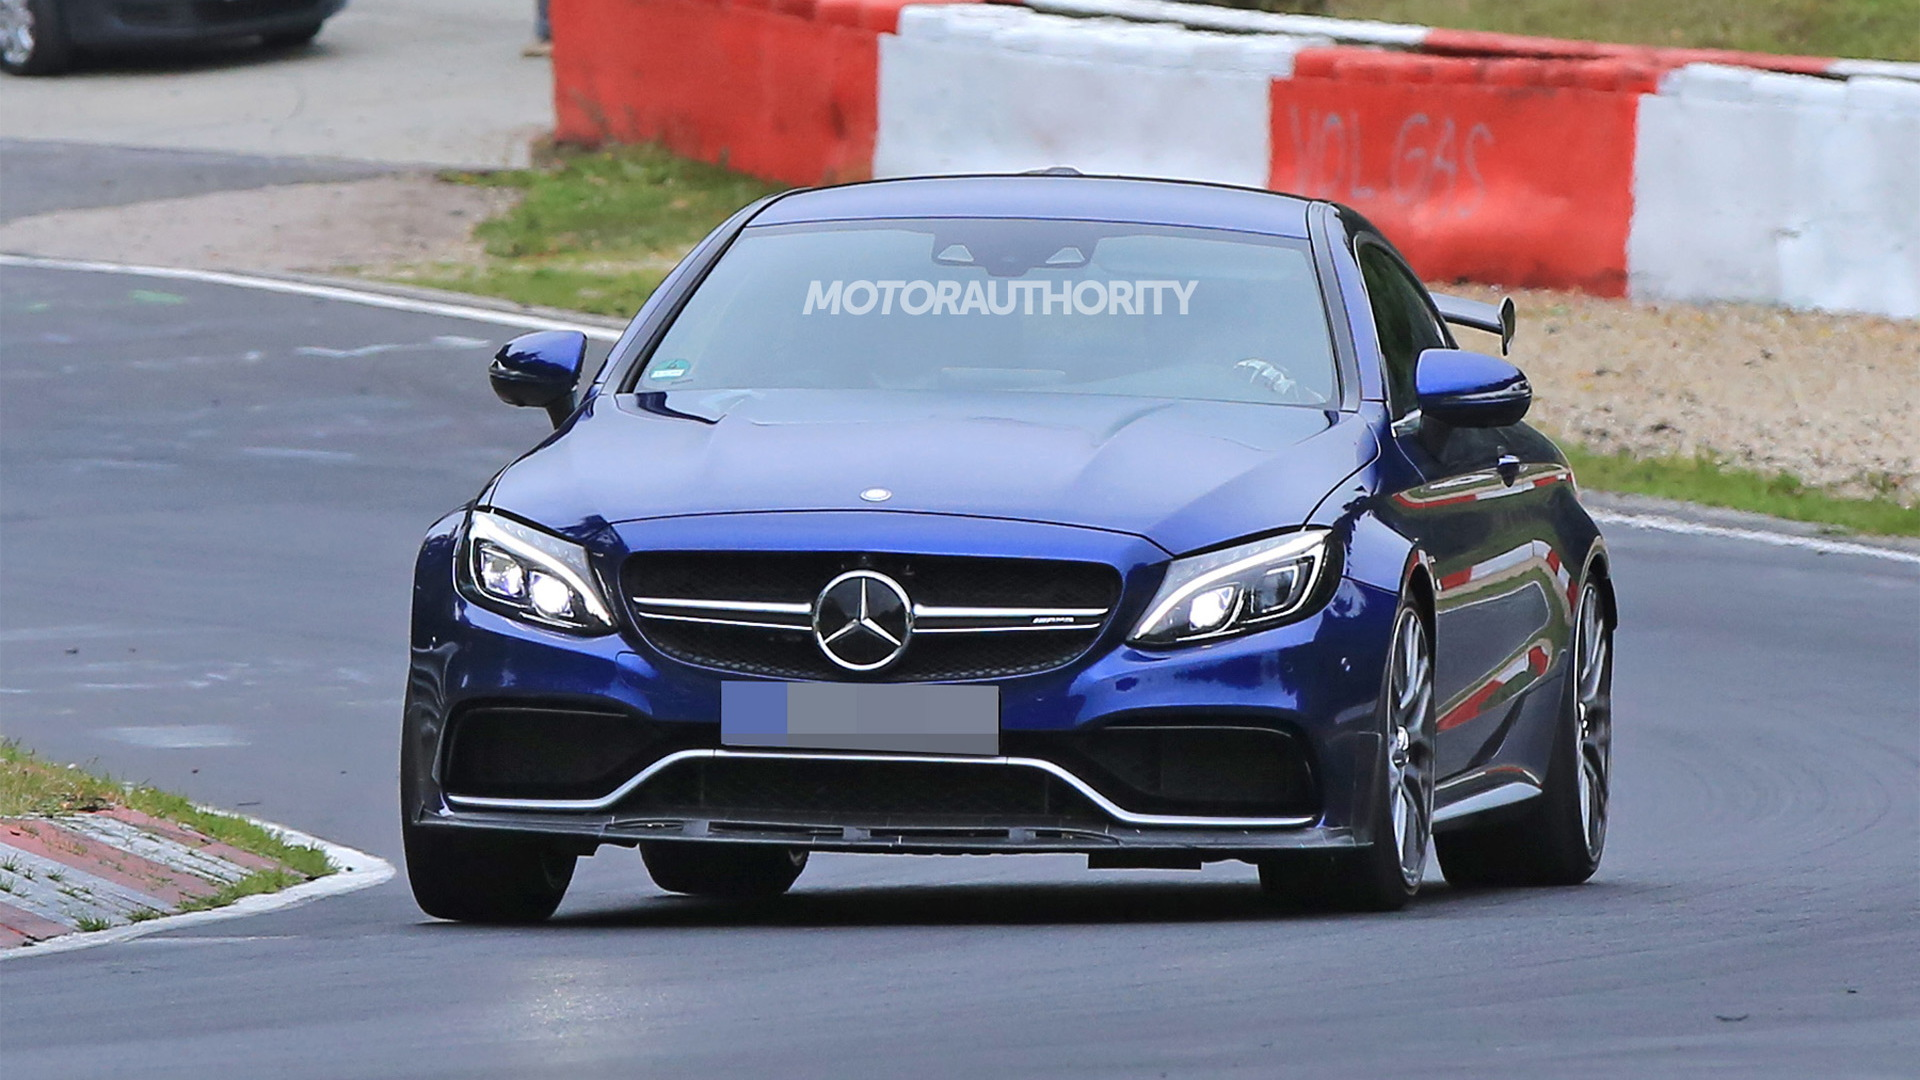 2018 Mercedes-AMG C63 R Coupe spy shots and video